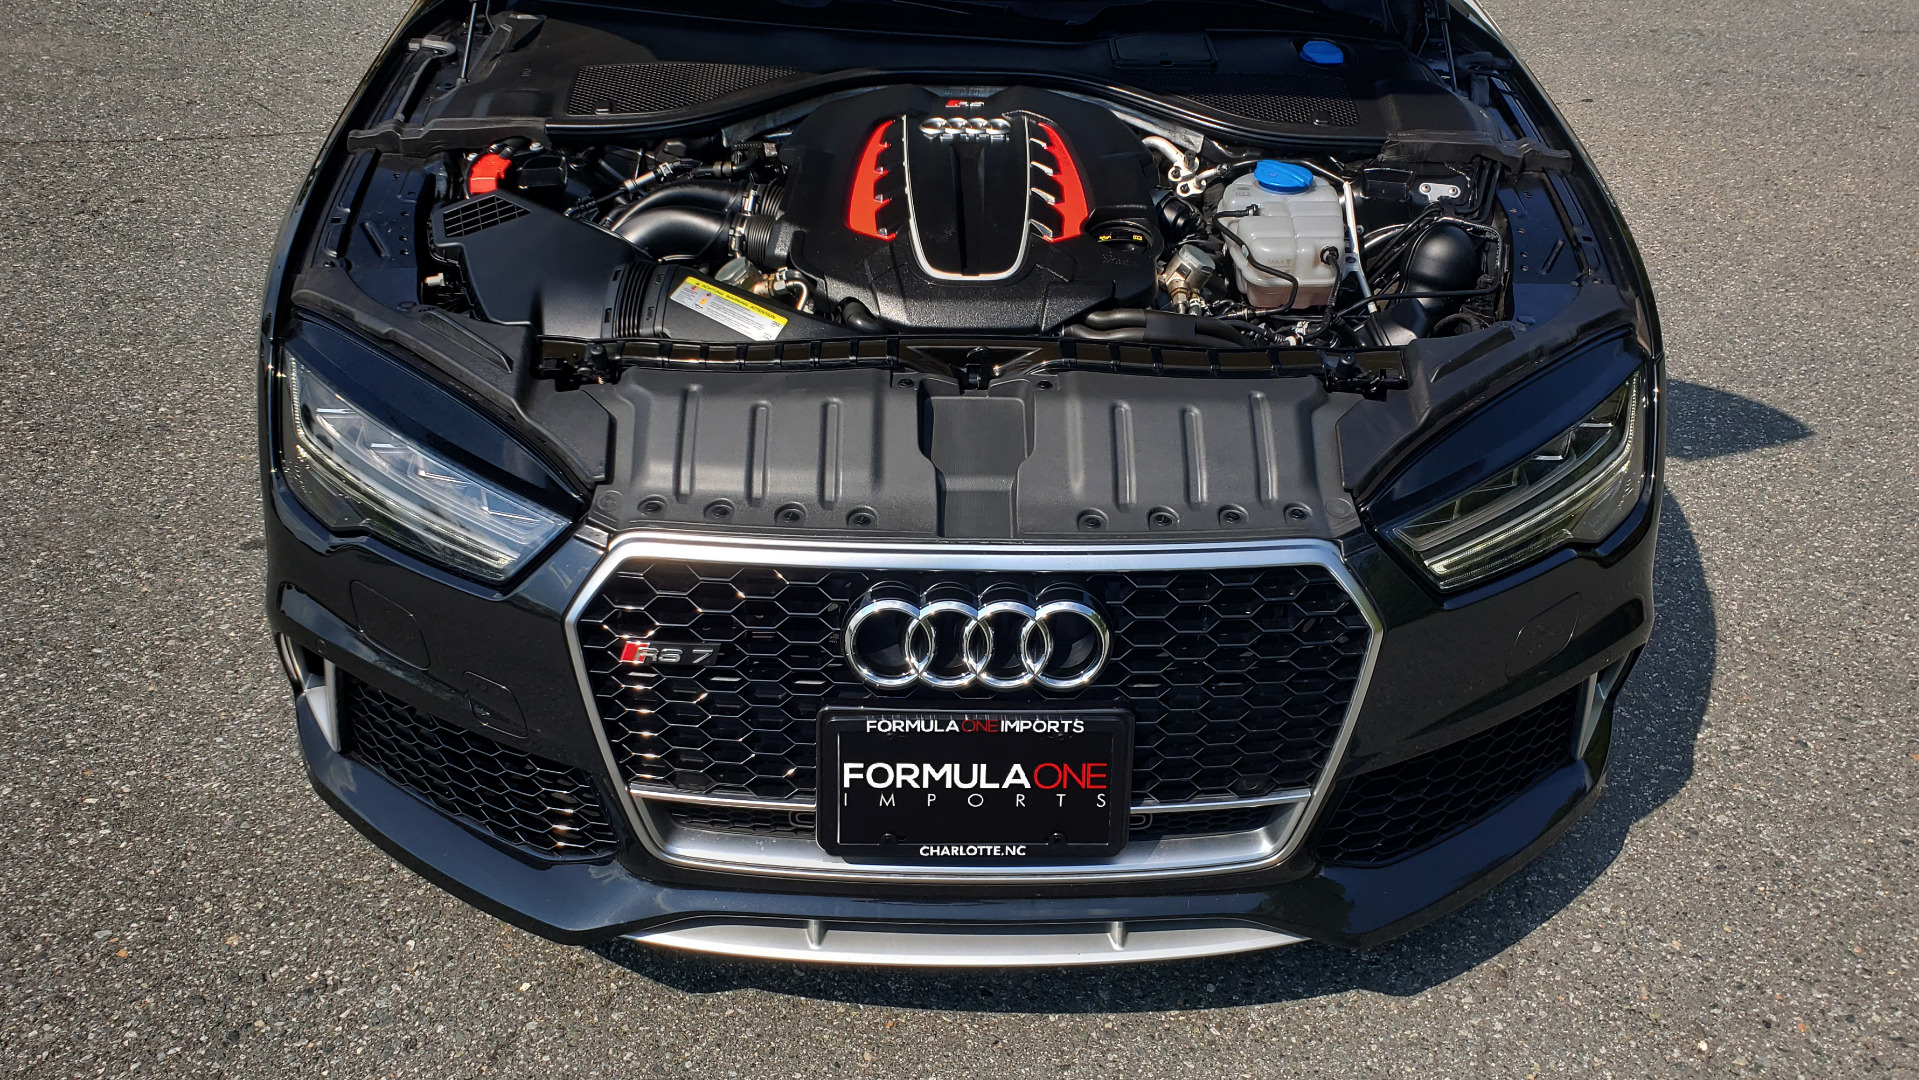 Used 2016 Audi RS 7 PRESTIGE / NAV / SUNROOF / BOSE / CAMERA / HTD STS for sale Sold at Formula Imports in Charlotte NC 28227 18